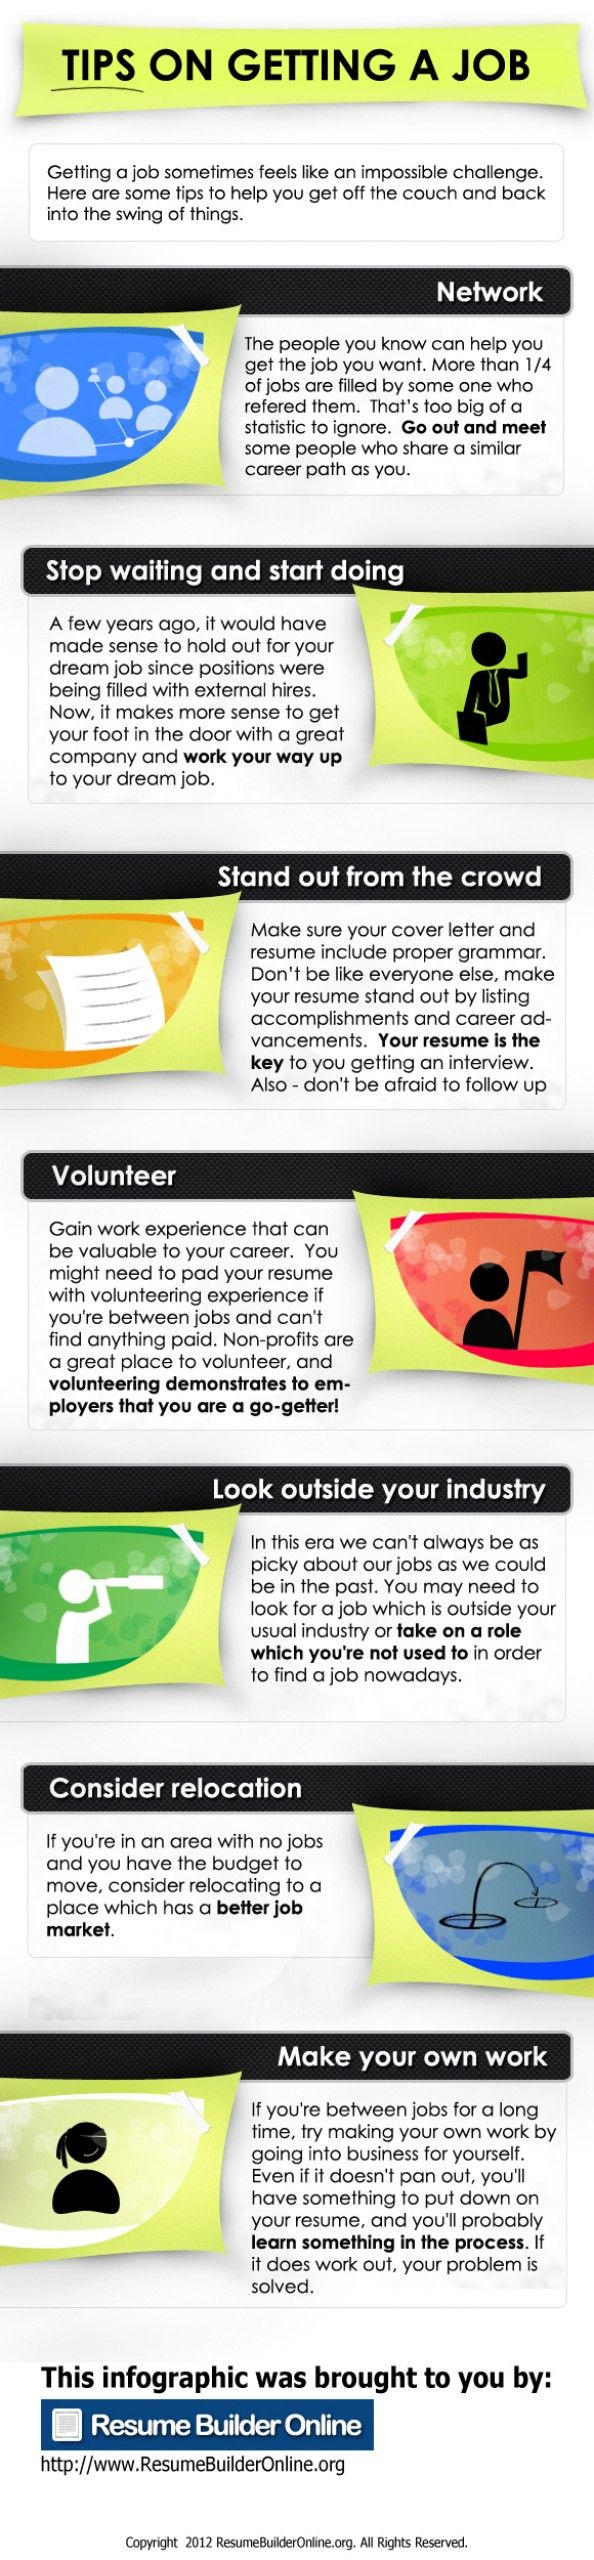 best ideas about job career job search tips job 7 useful tips on getting a job